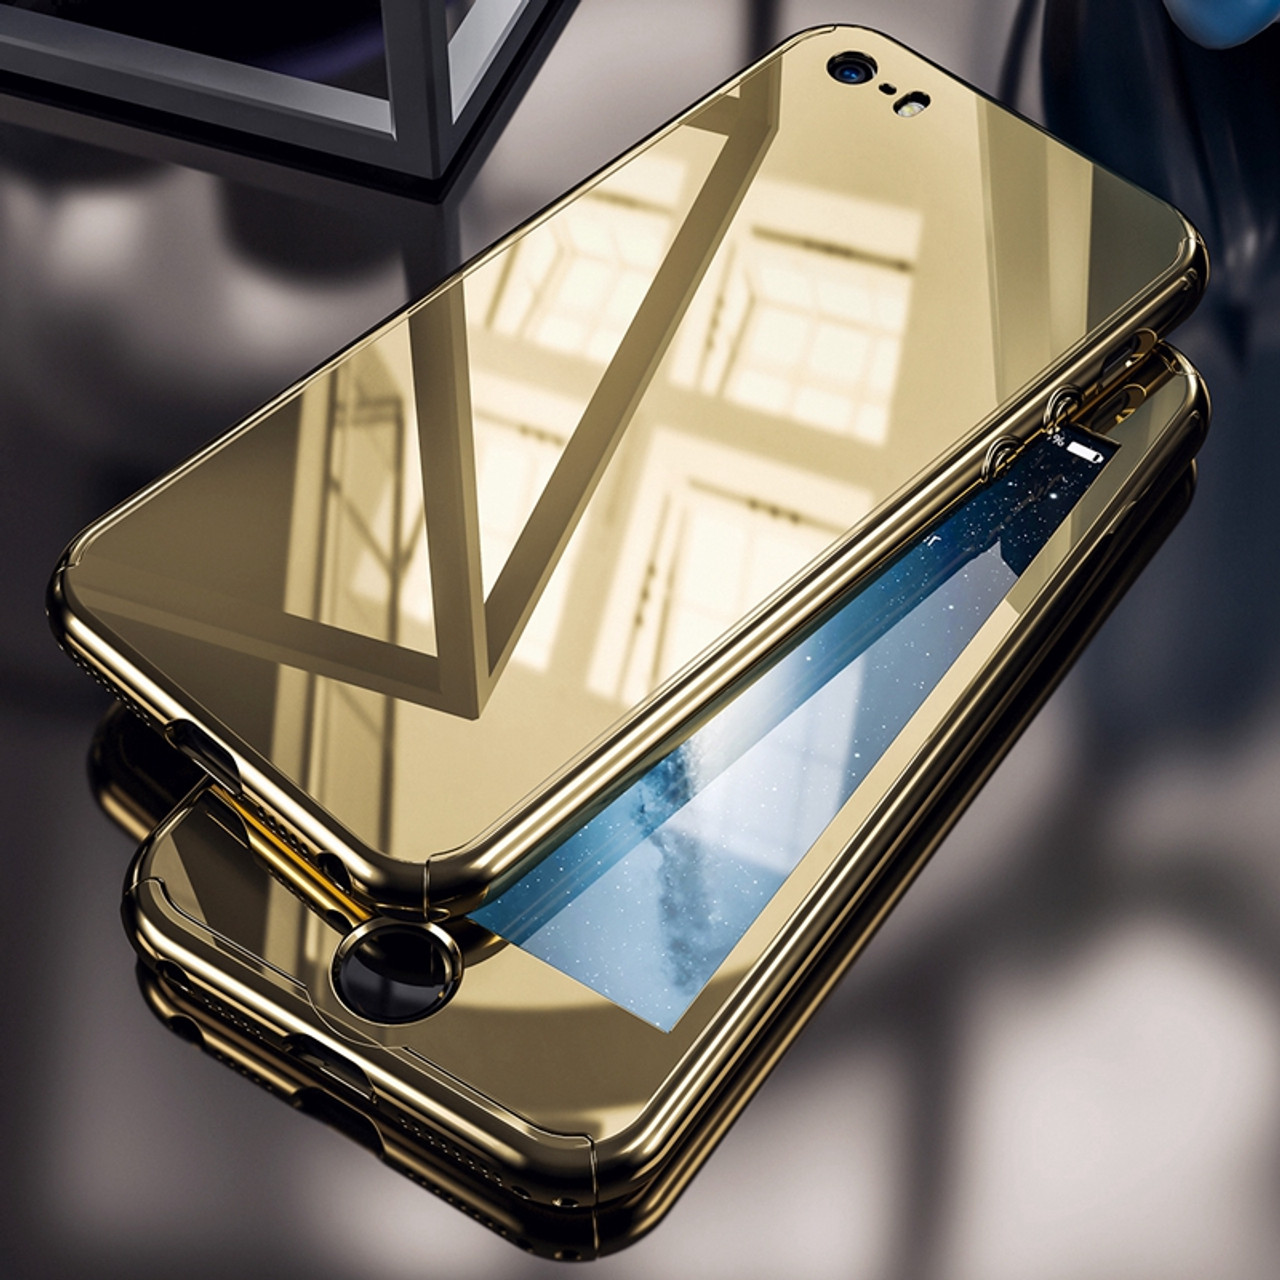 sale retailer 763d2 0f0d5 For iPhone 5S Case Luxury Business Gold Plating Mirror 360 Case For iPhone  5 5S For iPhone SE Hard PC Full Protection Cover Capa